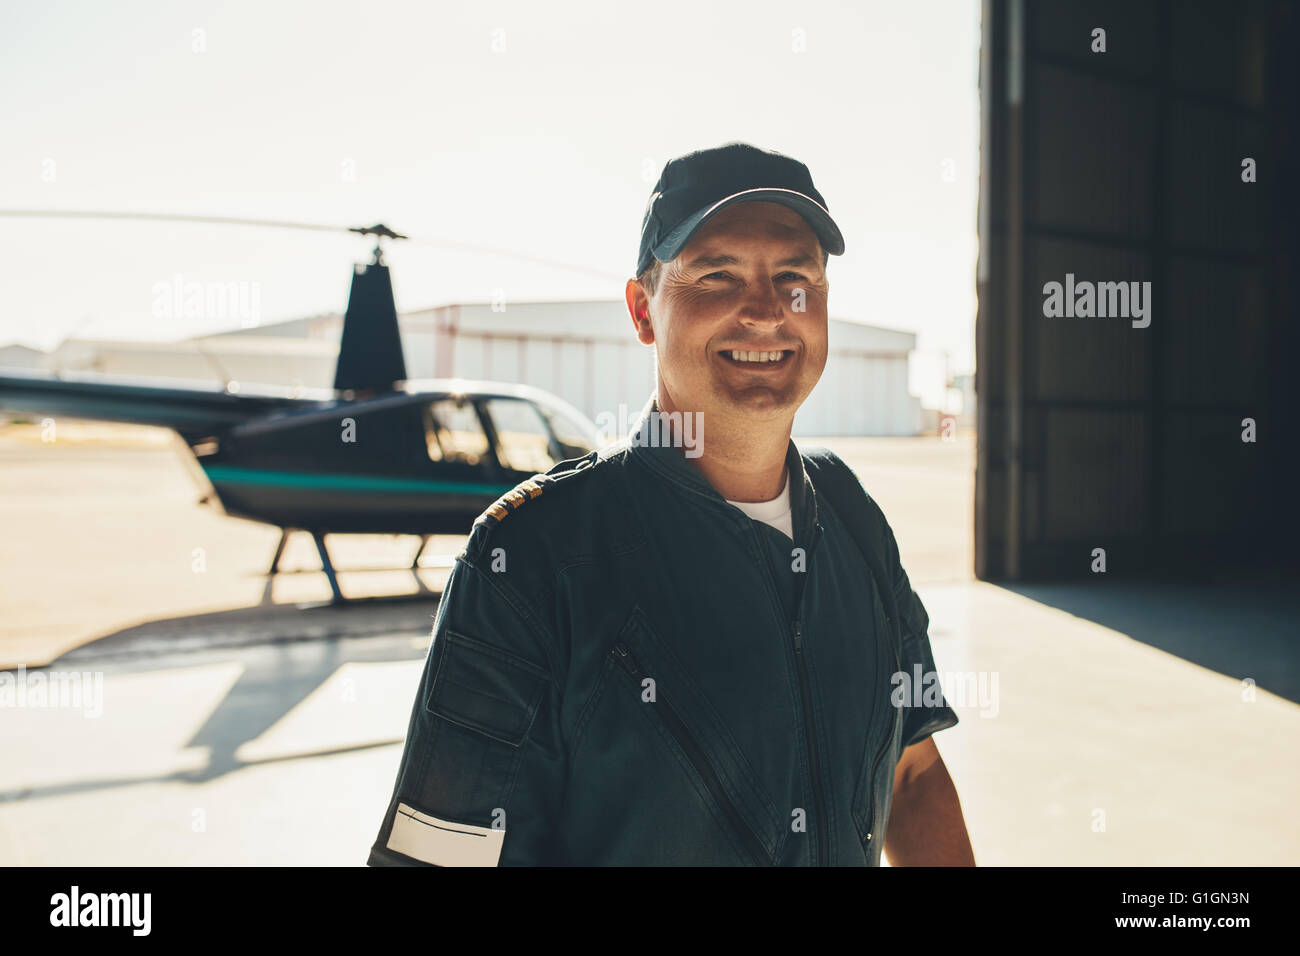 Portrait of happy male pilot standing in airplane hangar with a helicopter in background - Stock Image